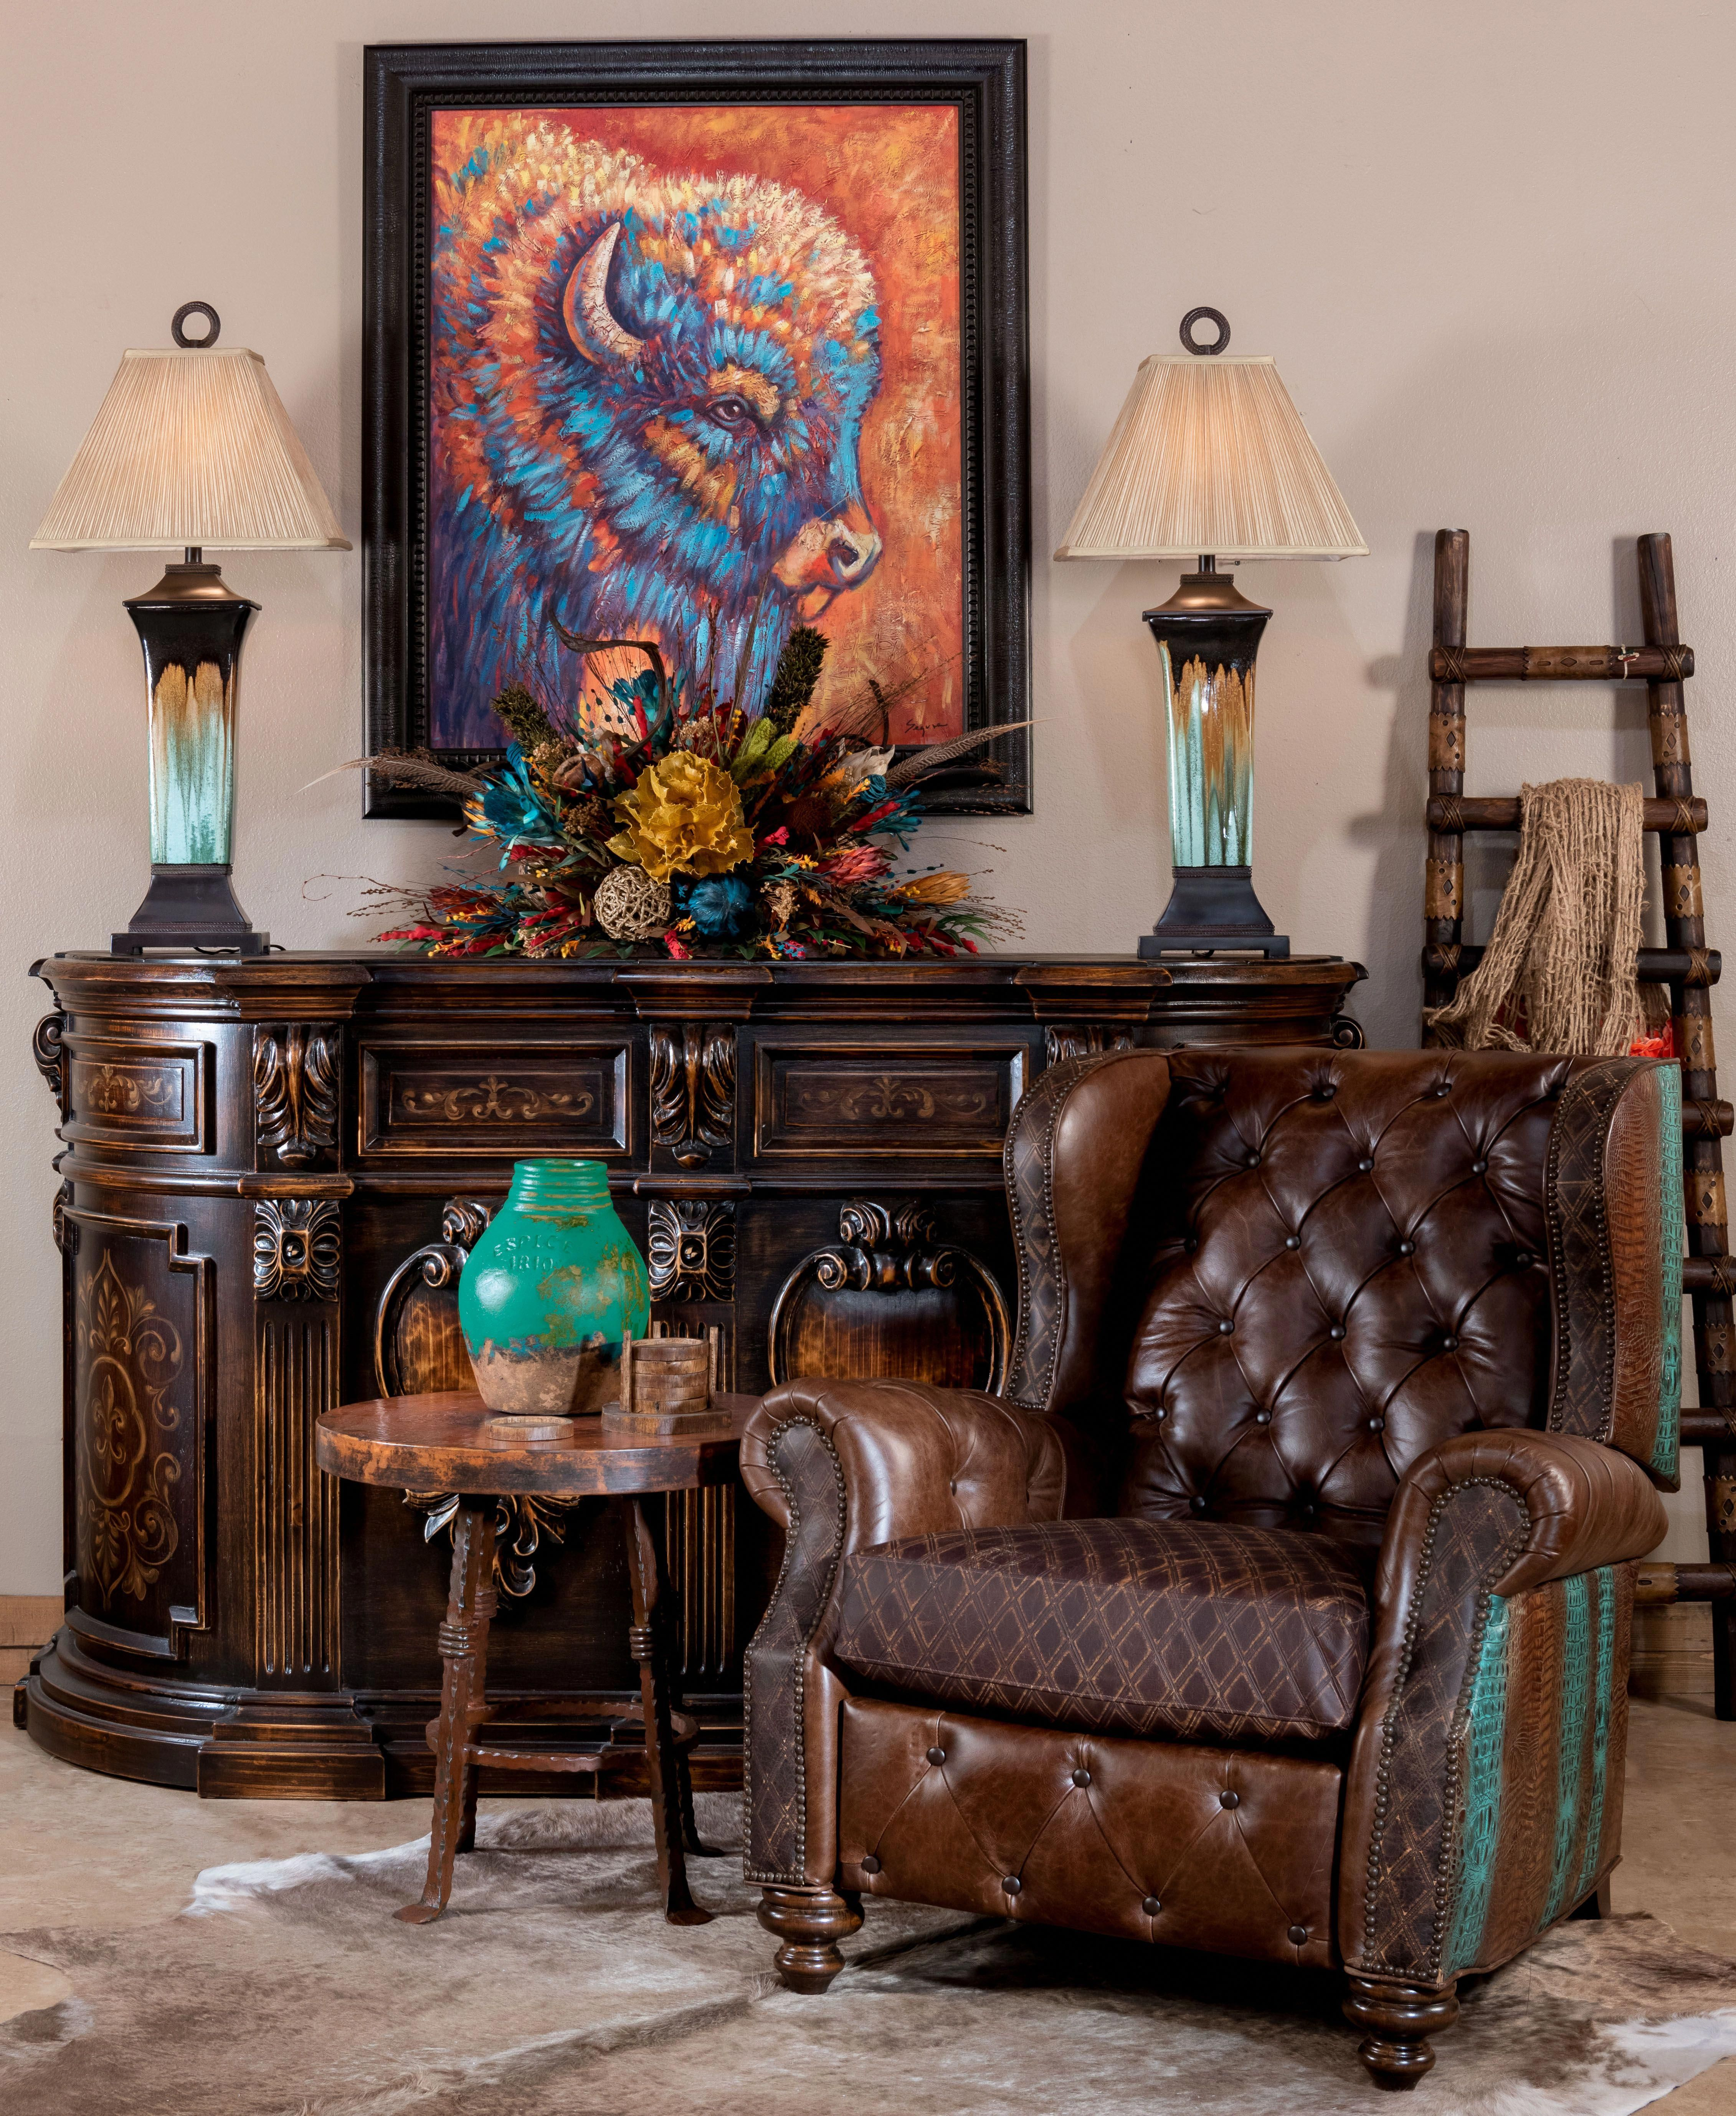 Modern Furniture 2014 Clever Furniture Arrangement Tips: The Montana Recliner Is A Show Stopper That Will Be Sure